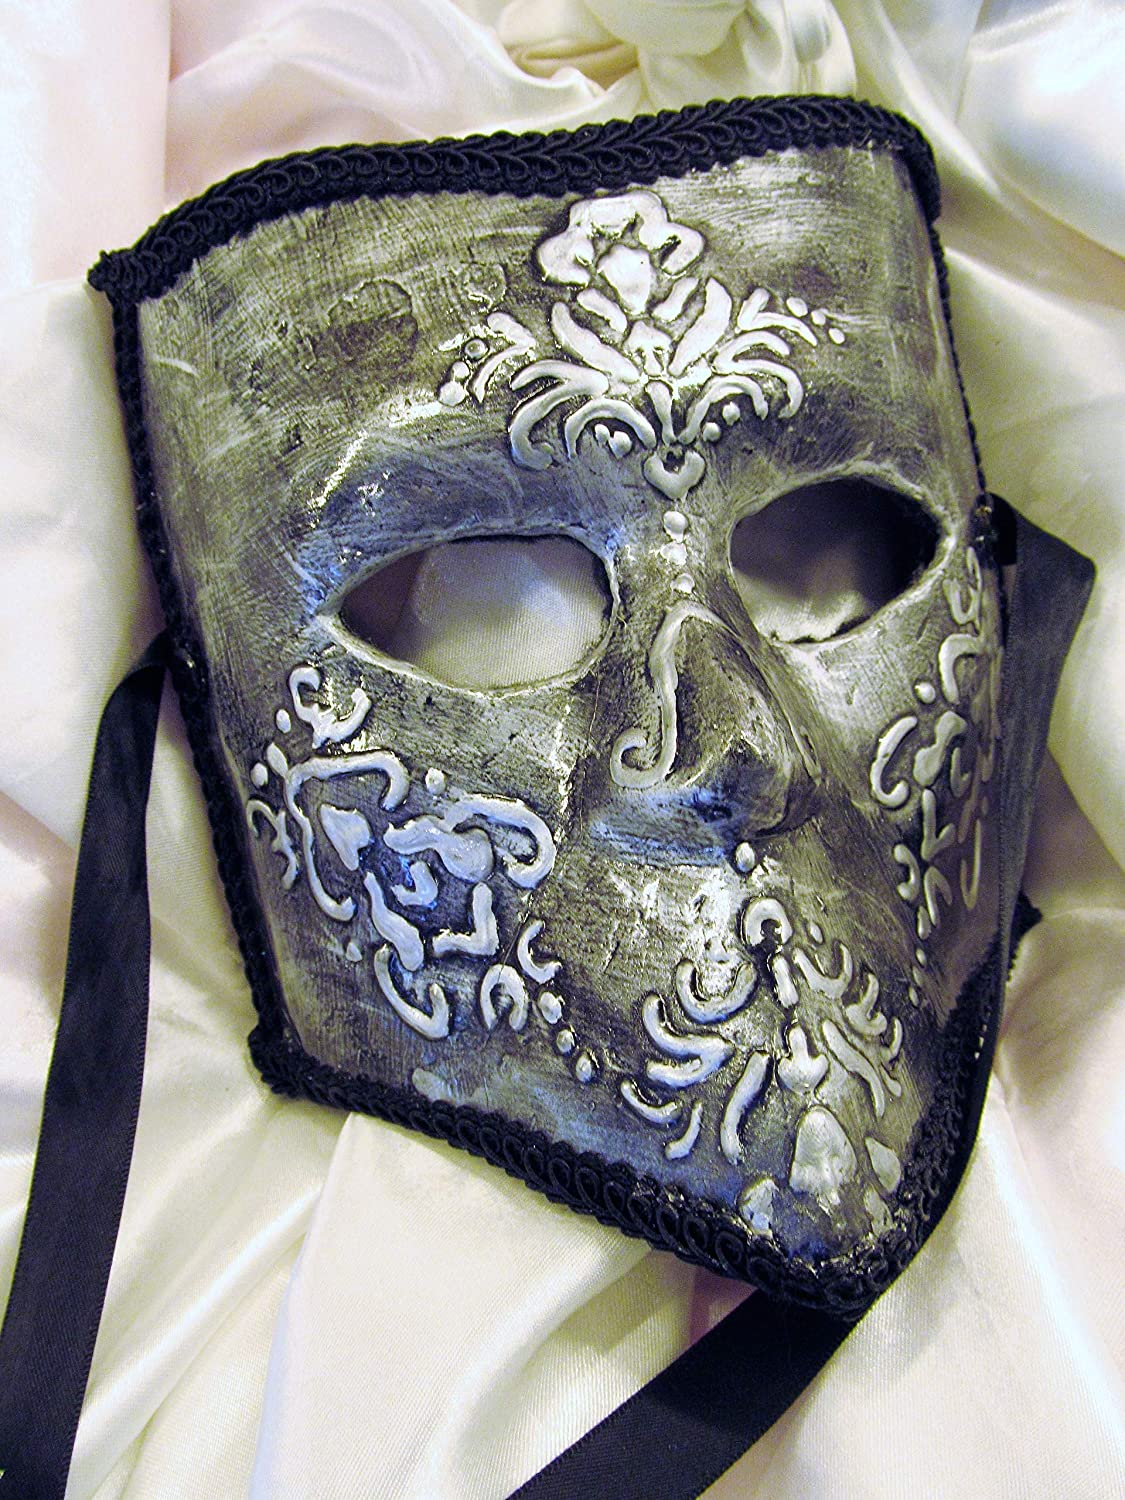 Argento Free shipping on famous posting reviews Cavaliere Bauta- Silver Mask Knight Men's